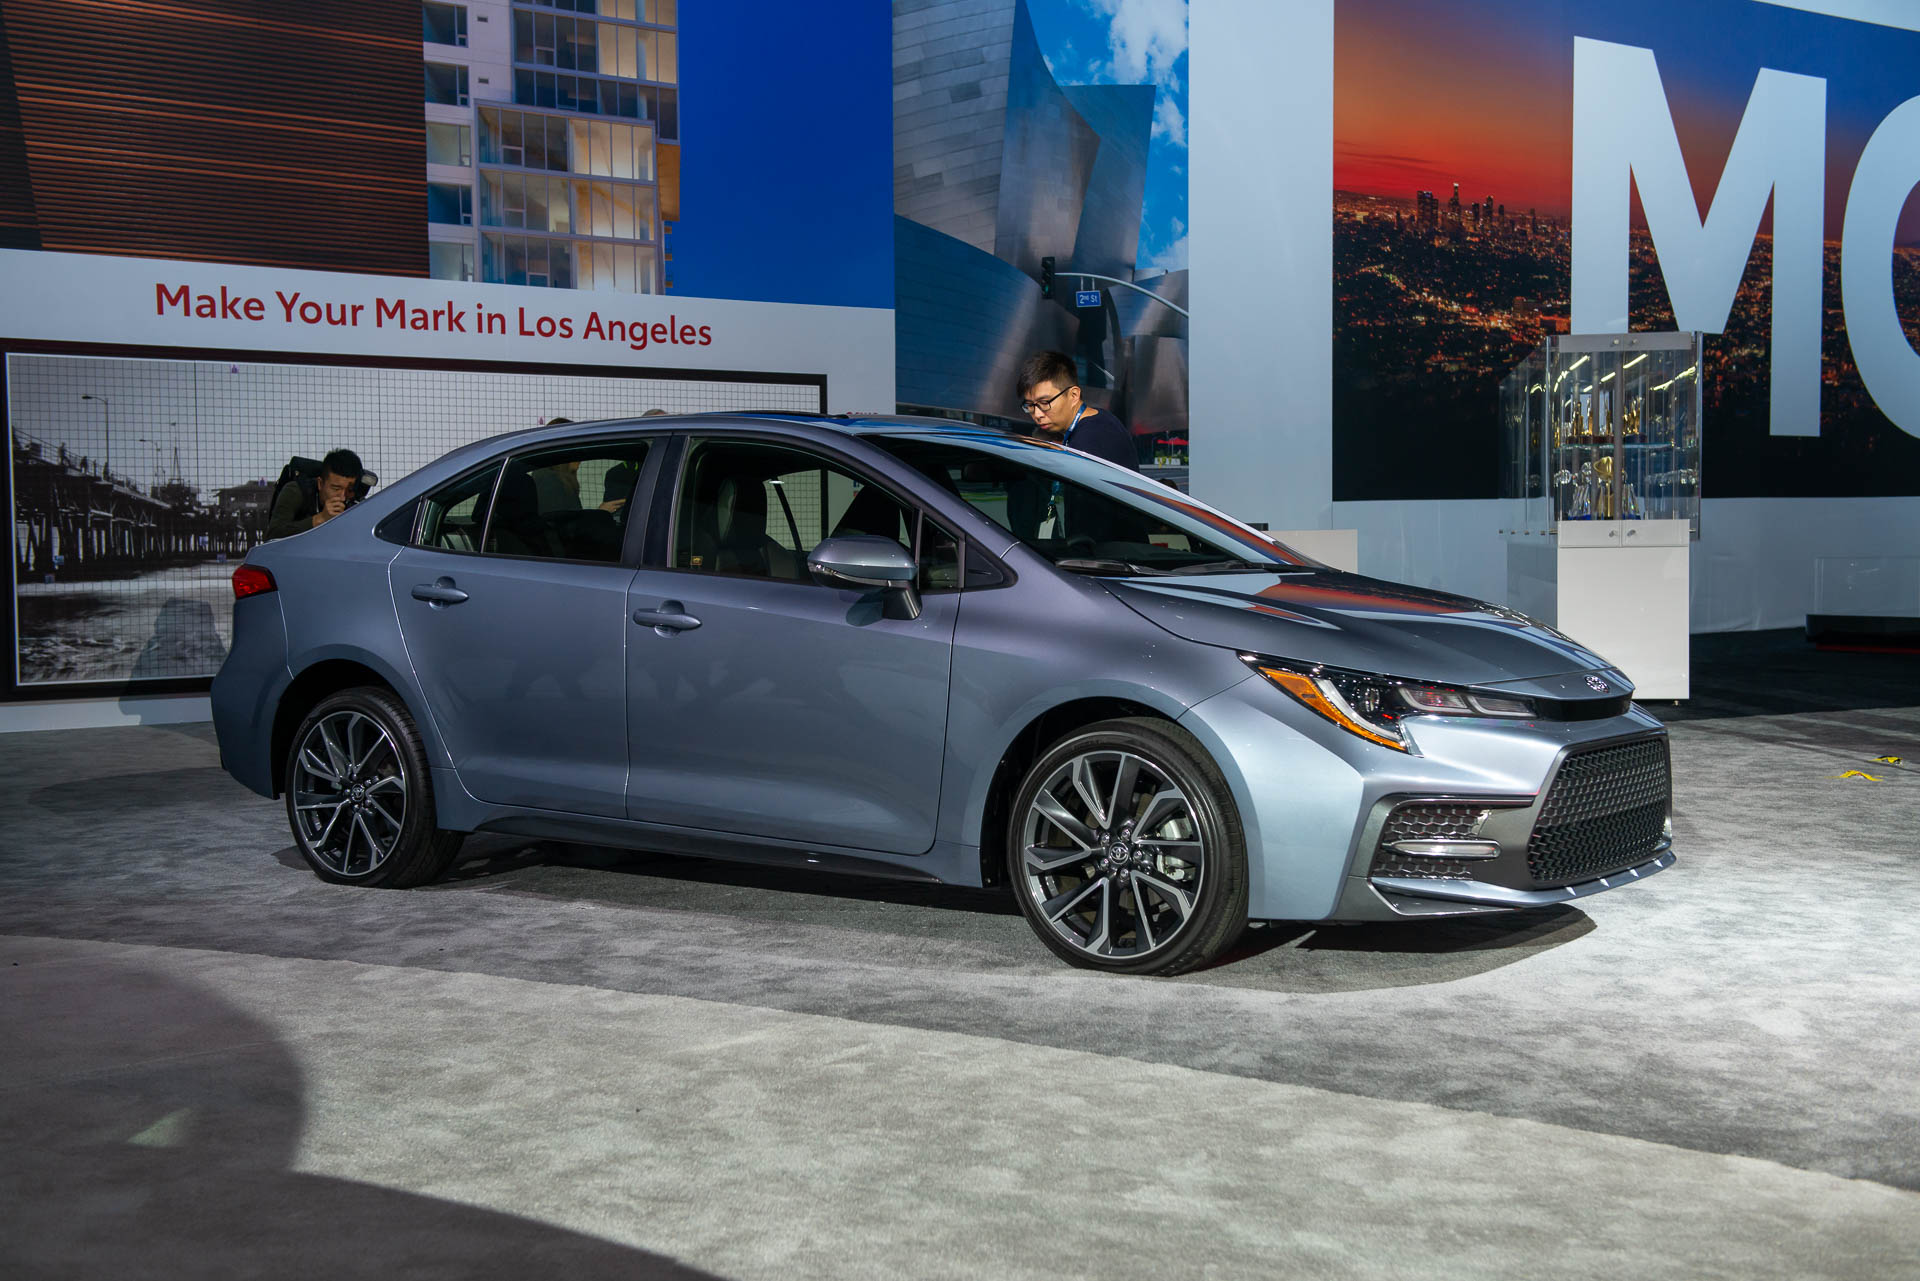 Toyota Corolla Mpg >> 2020 Toyota Corolla Hybrid 50 Mpg Hybrid Tech For A New Normal